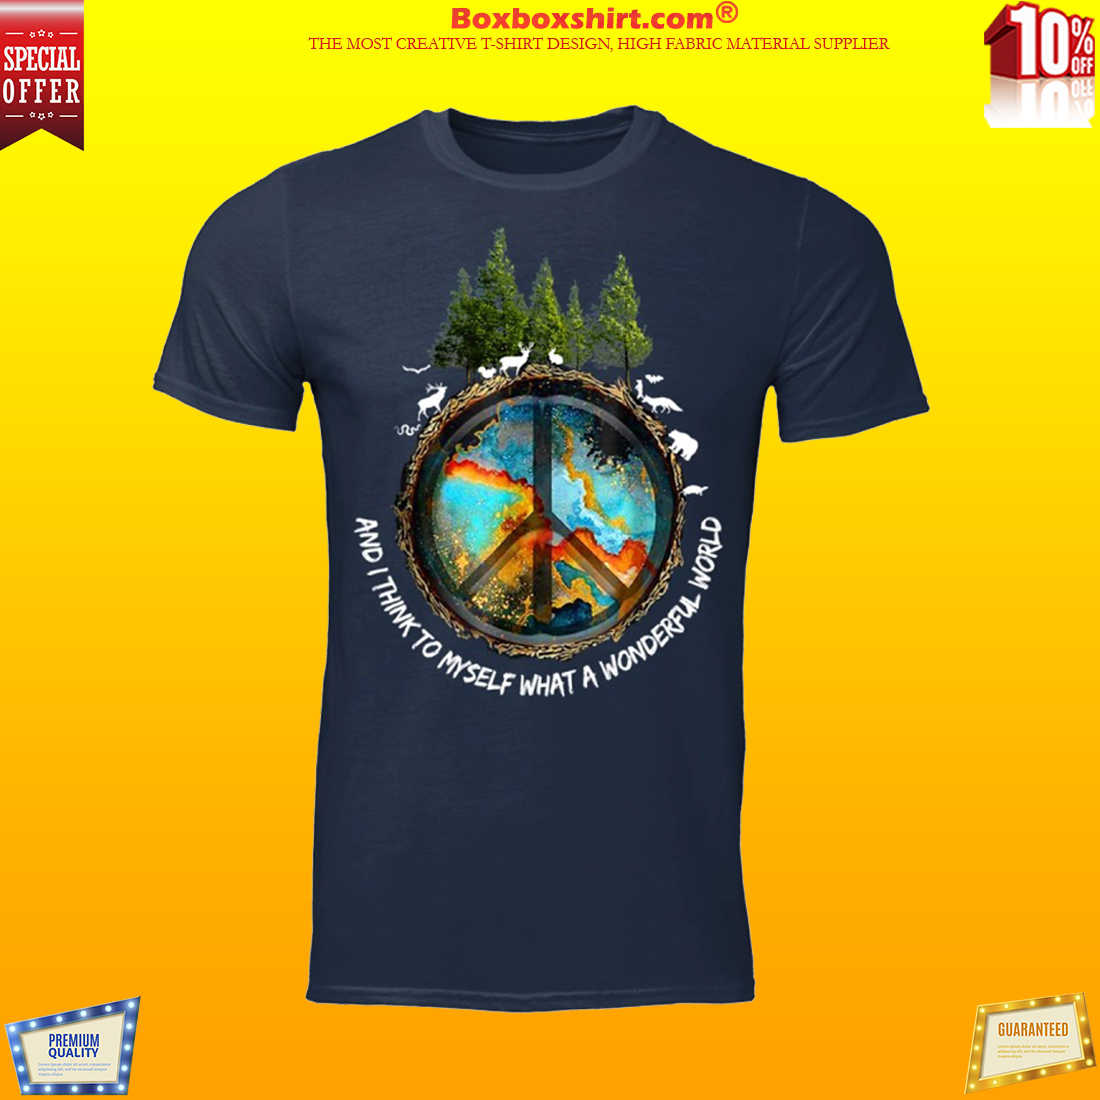 Peace and I think to myself what a wonderful world shirt